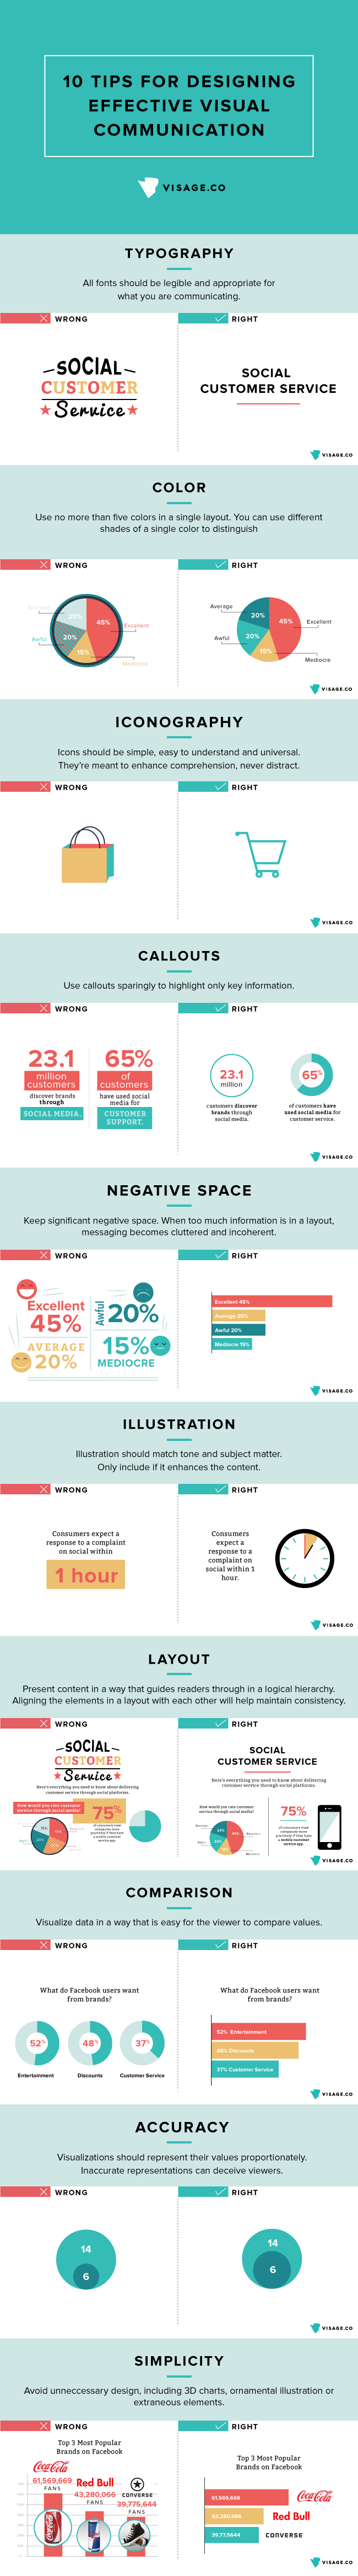 10 Tips To Designing Effective Visual Communication